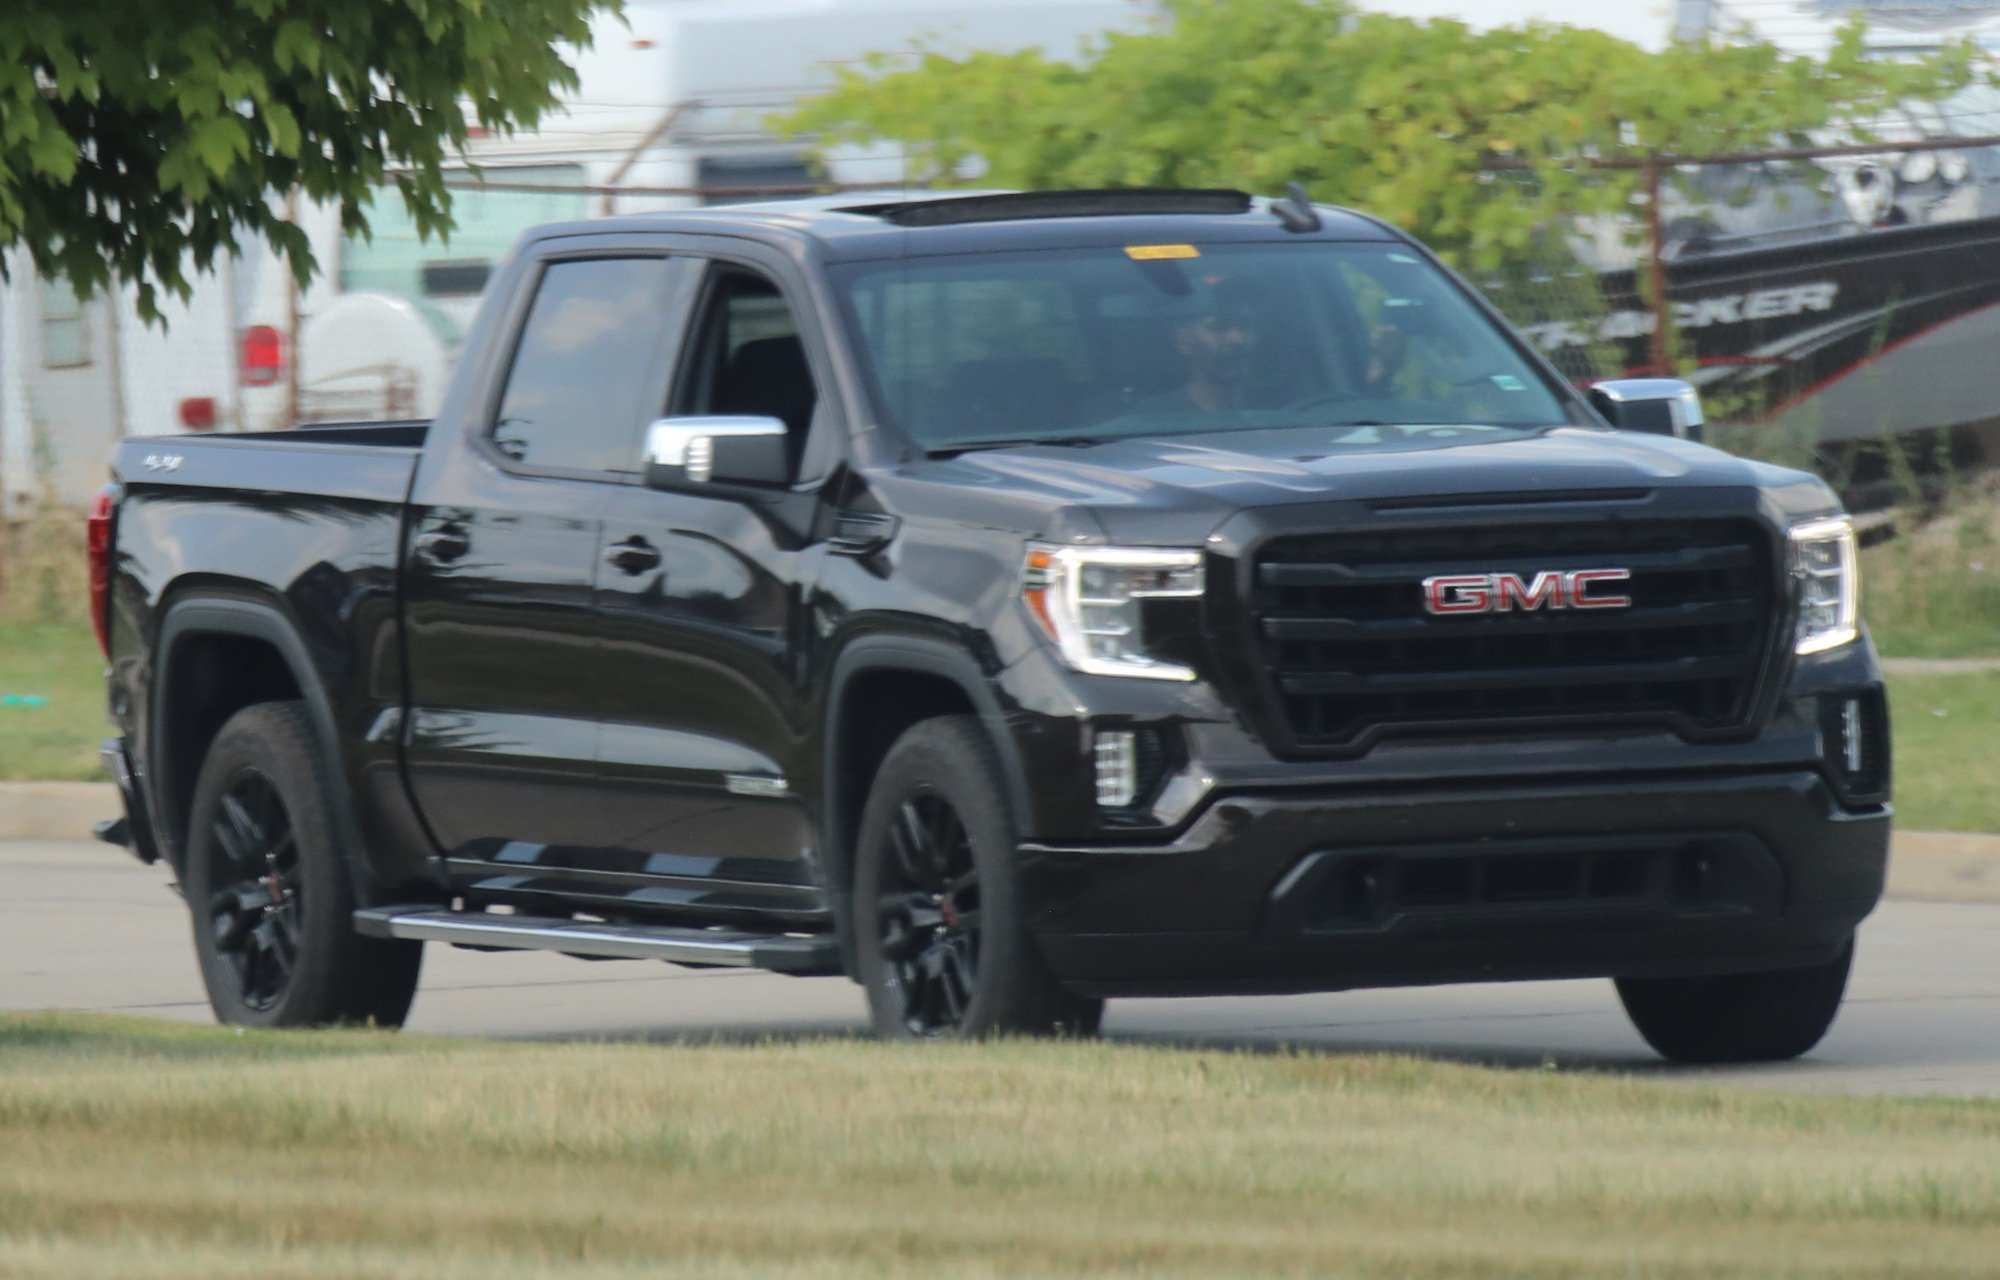 86 Concept of 2019 Gmc Elevation Ratings by 2019 Gmc Elevation